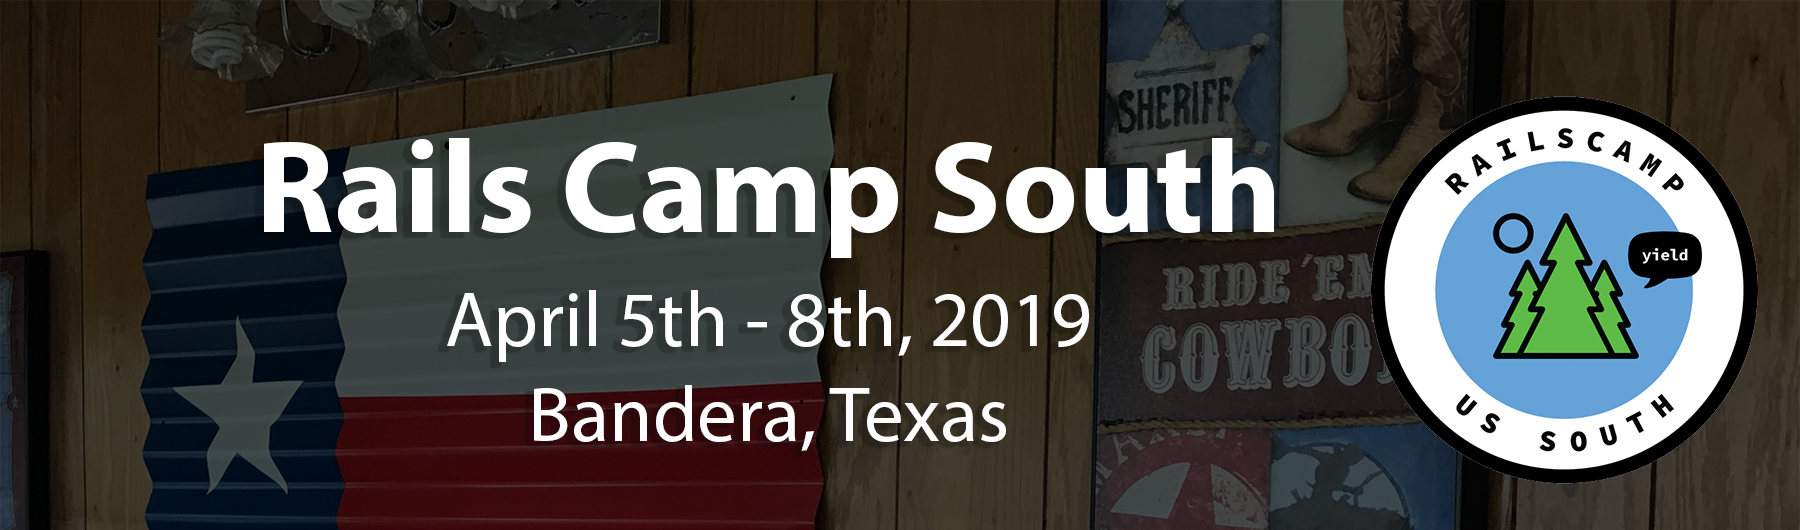 Rails Camp South 2019